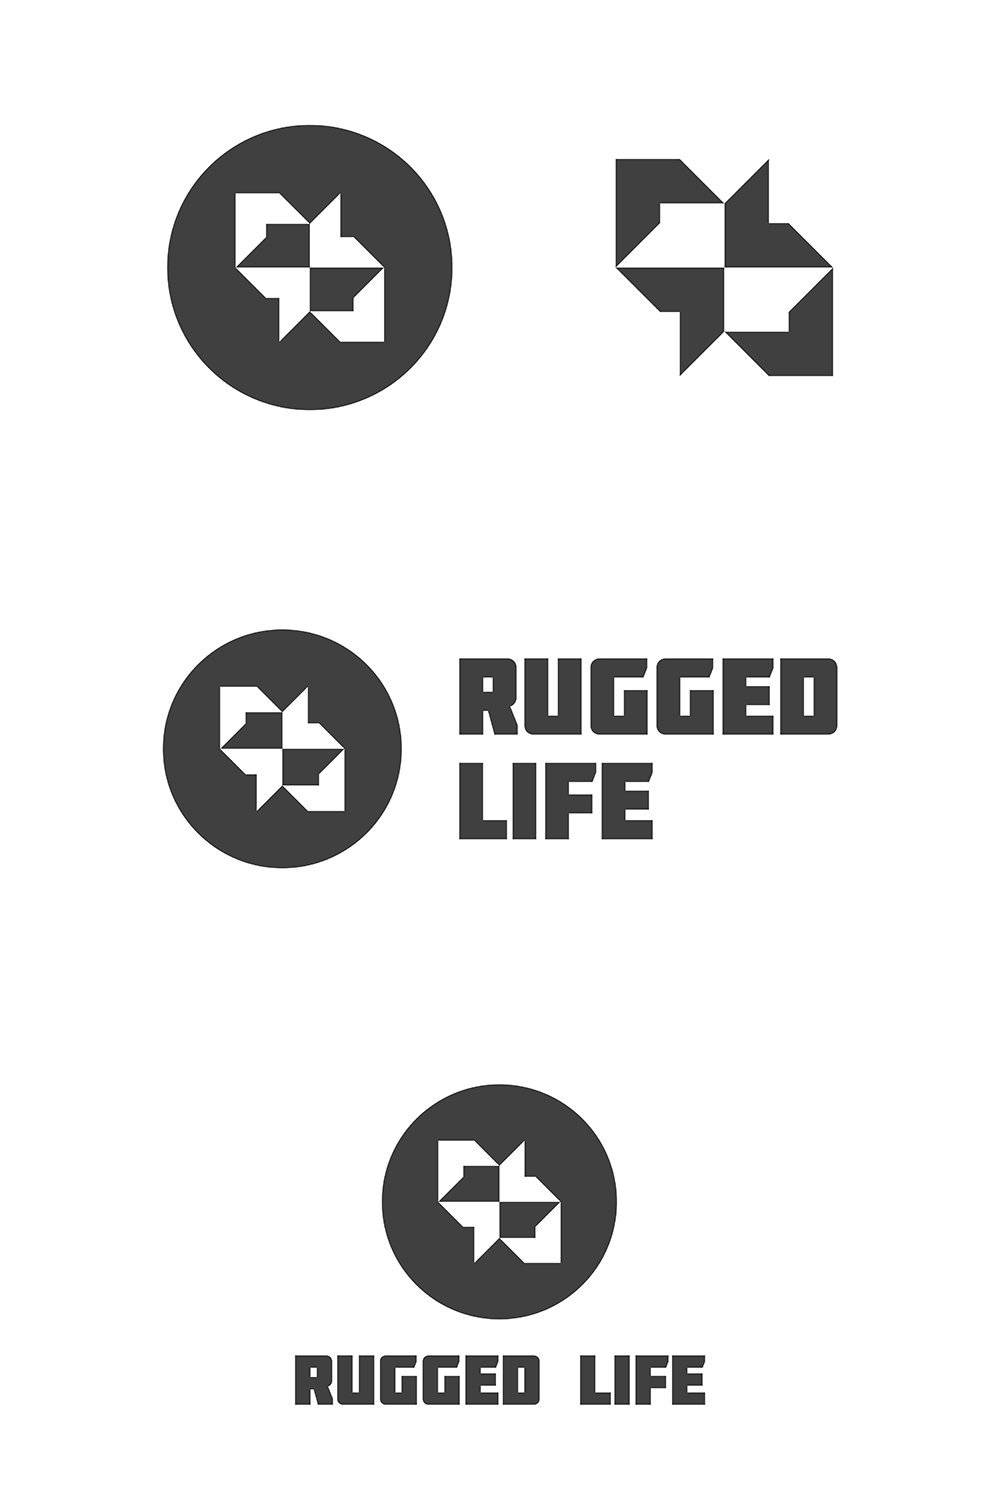 Rugged-Life-Final-01